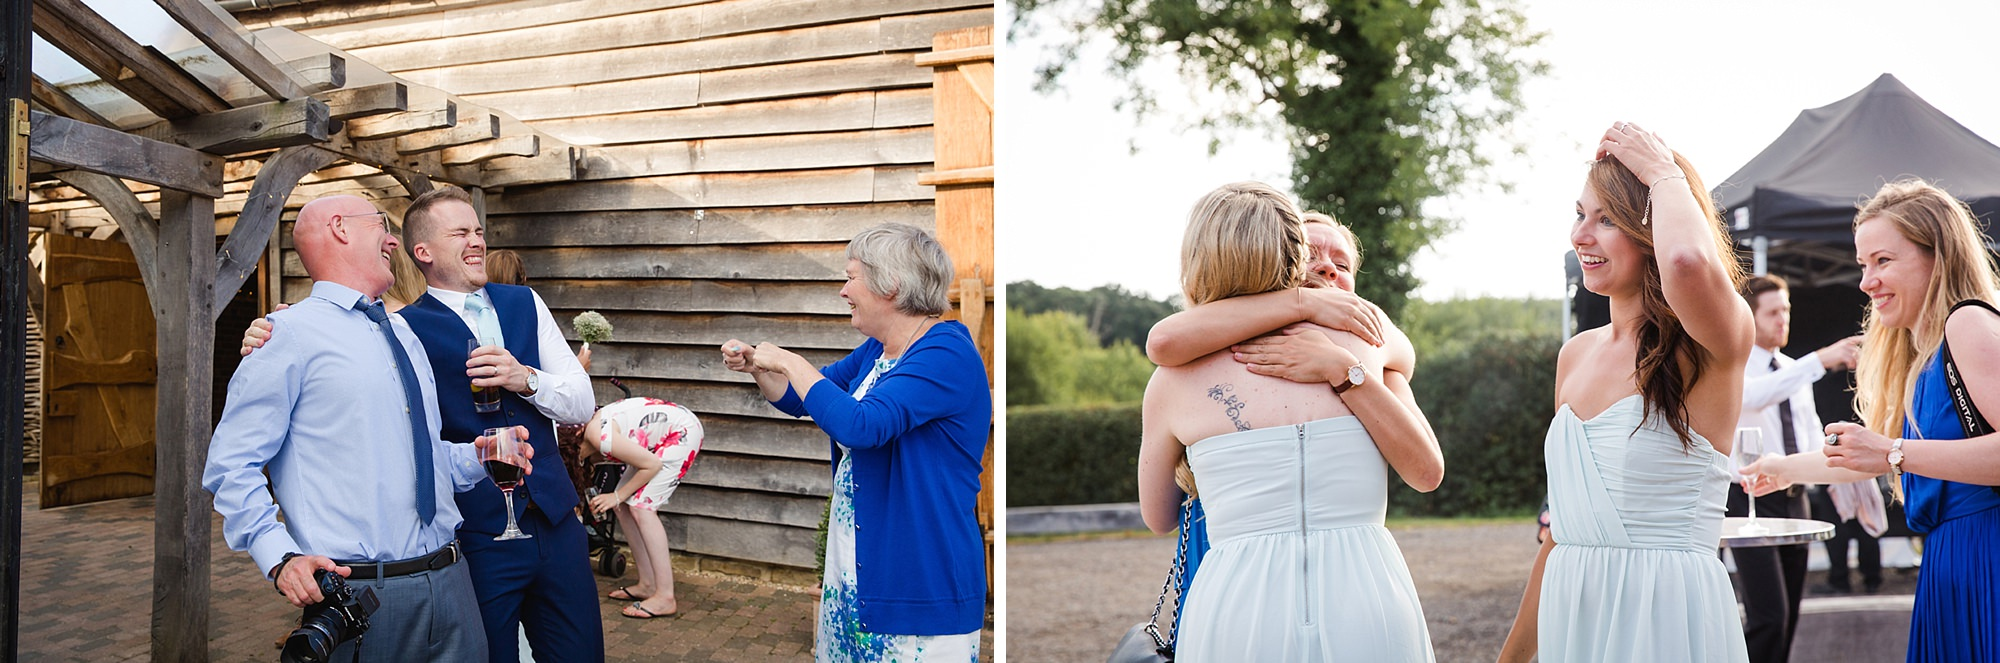 Old Greens Barn Newdigate wedding photography bride hugging guest